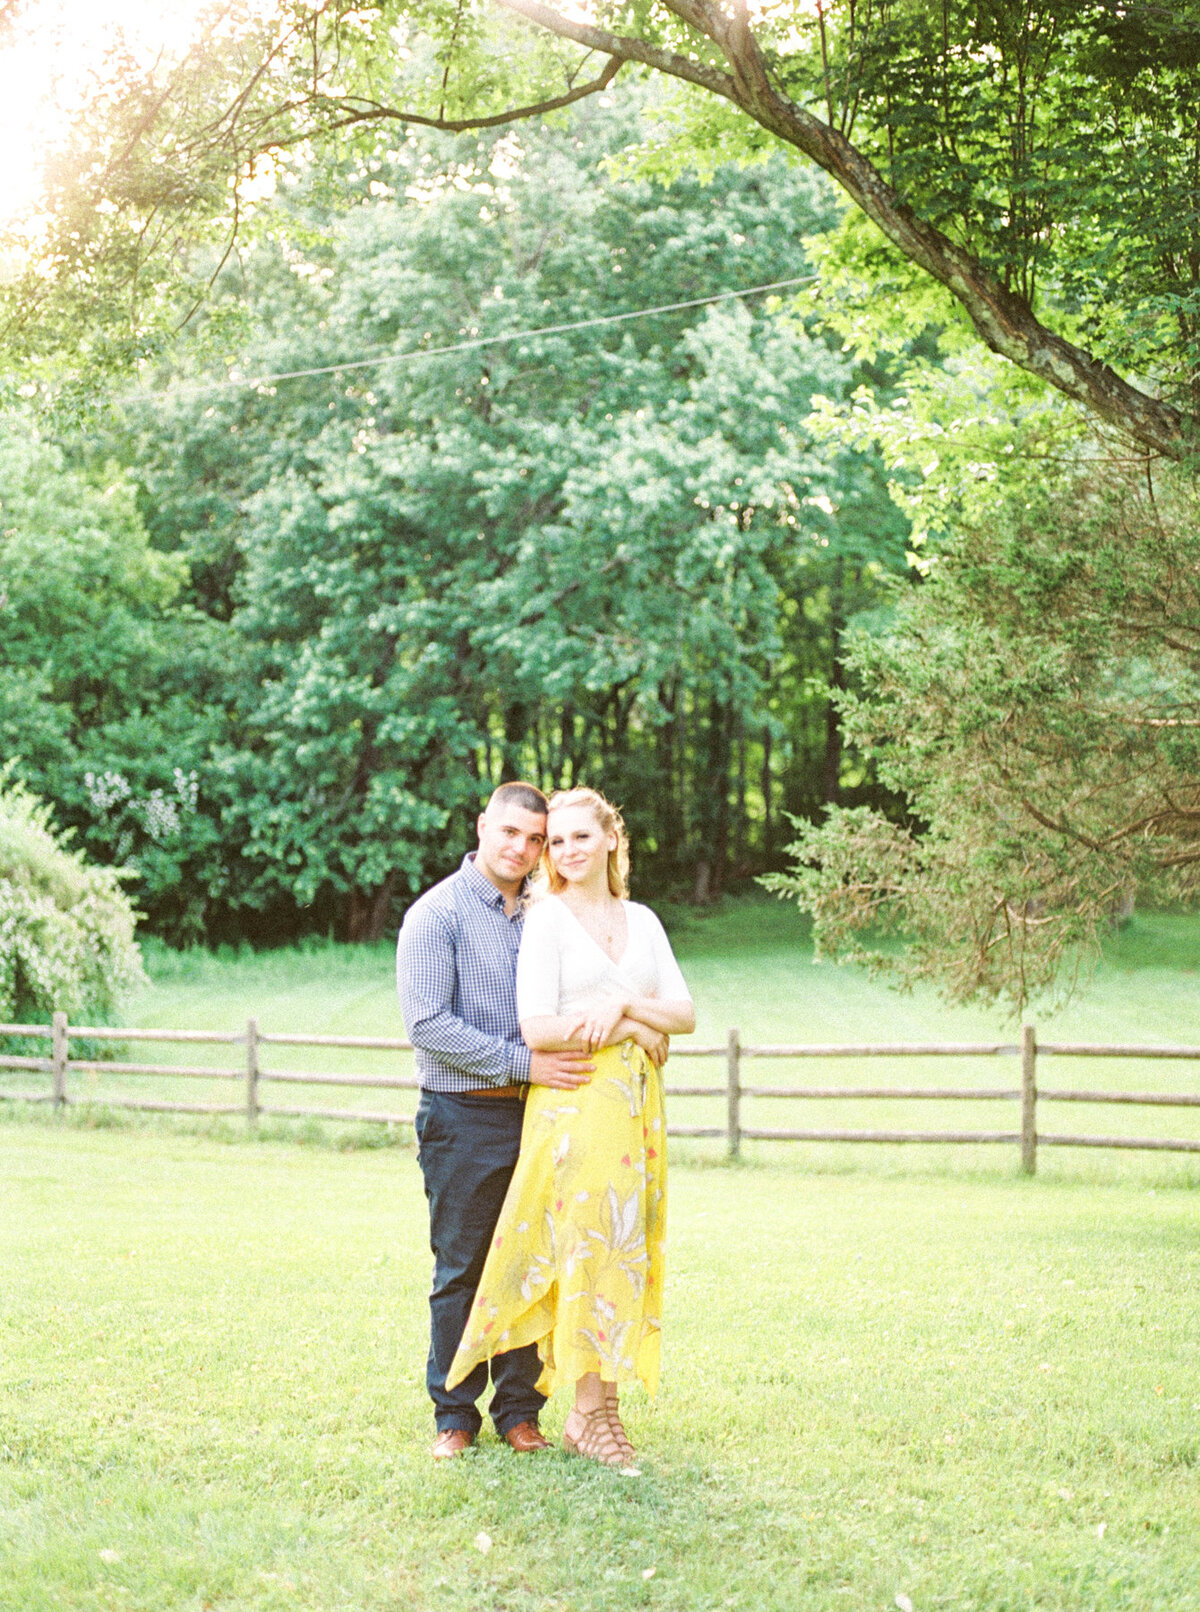 Michelle Behre Photography NJ Fine Art Wedding Photographer at Engagement Session in Waterloo Village Byram NJ-020